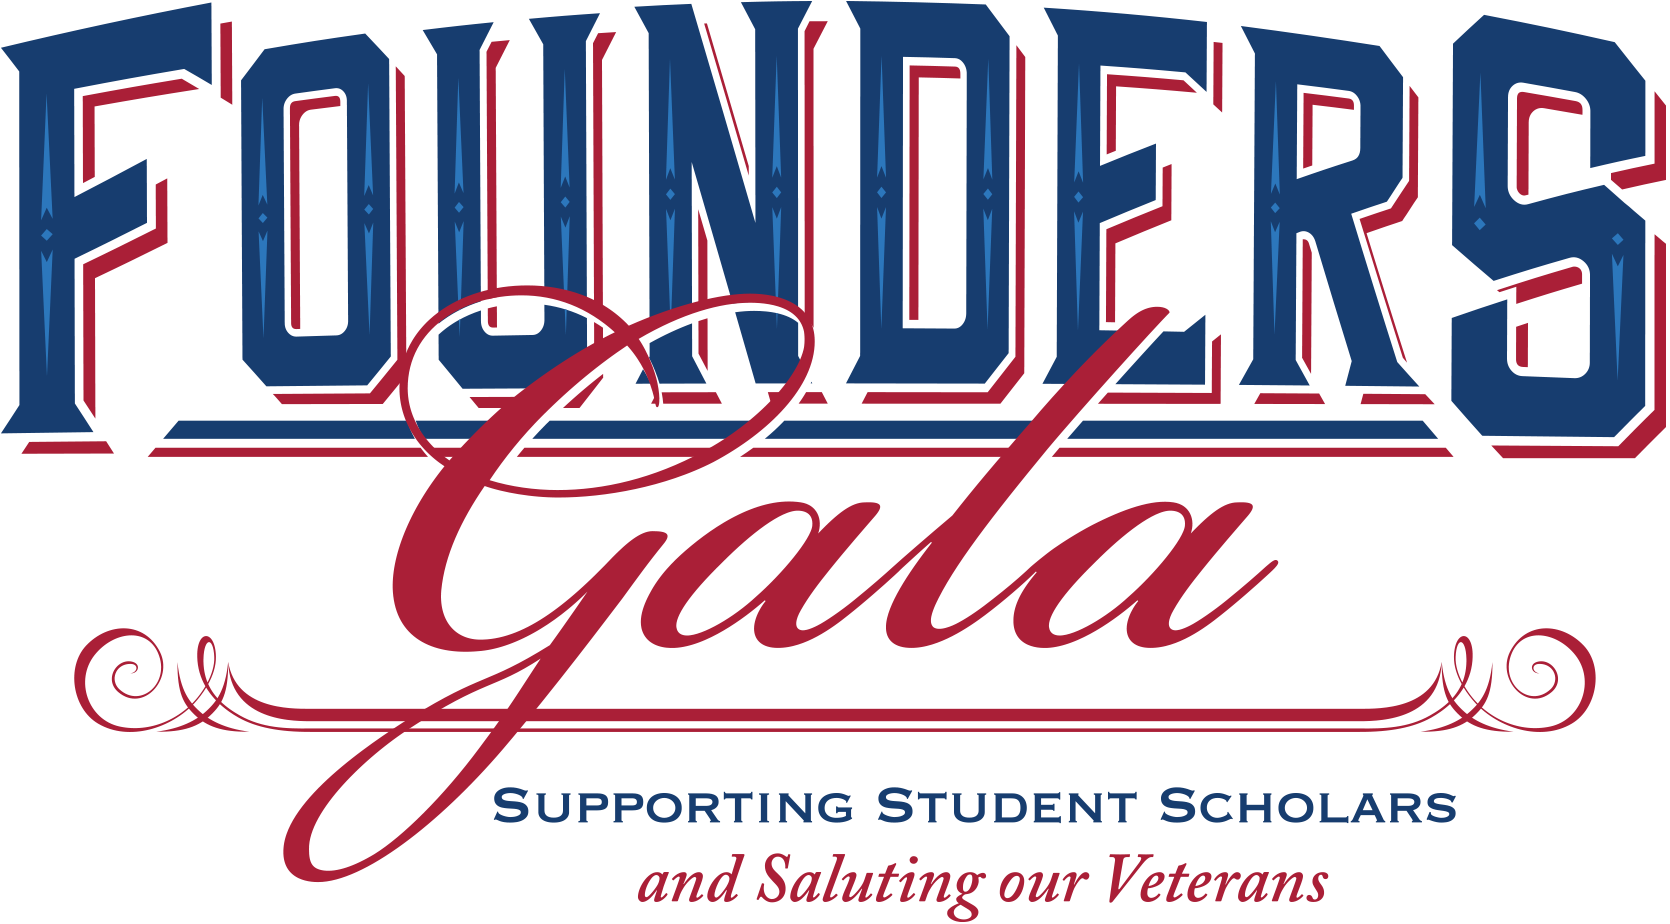 Founders Gala, supporting student scholars and saluting our veterans